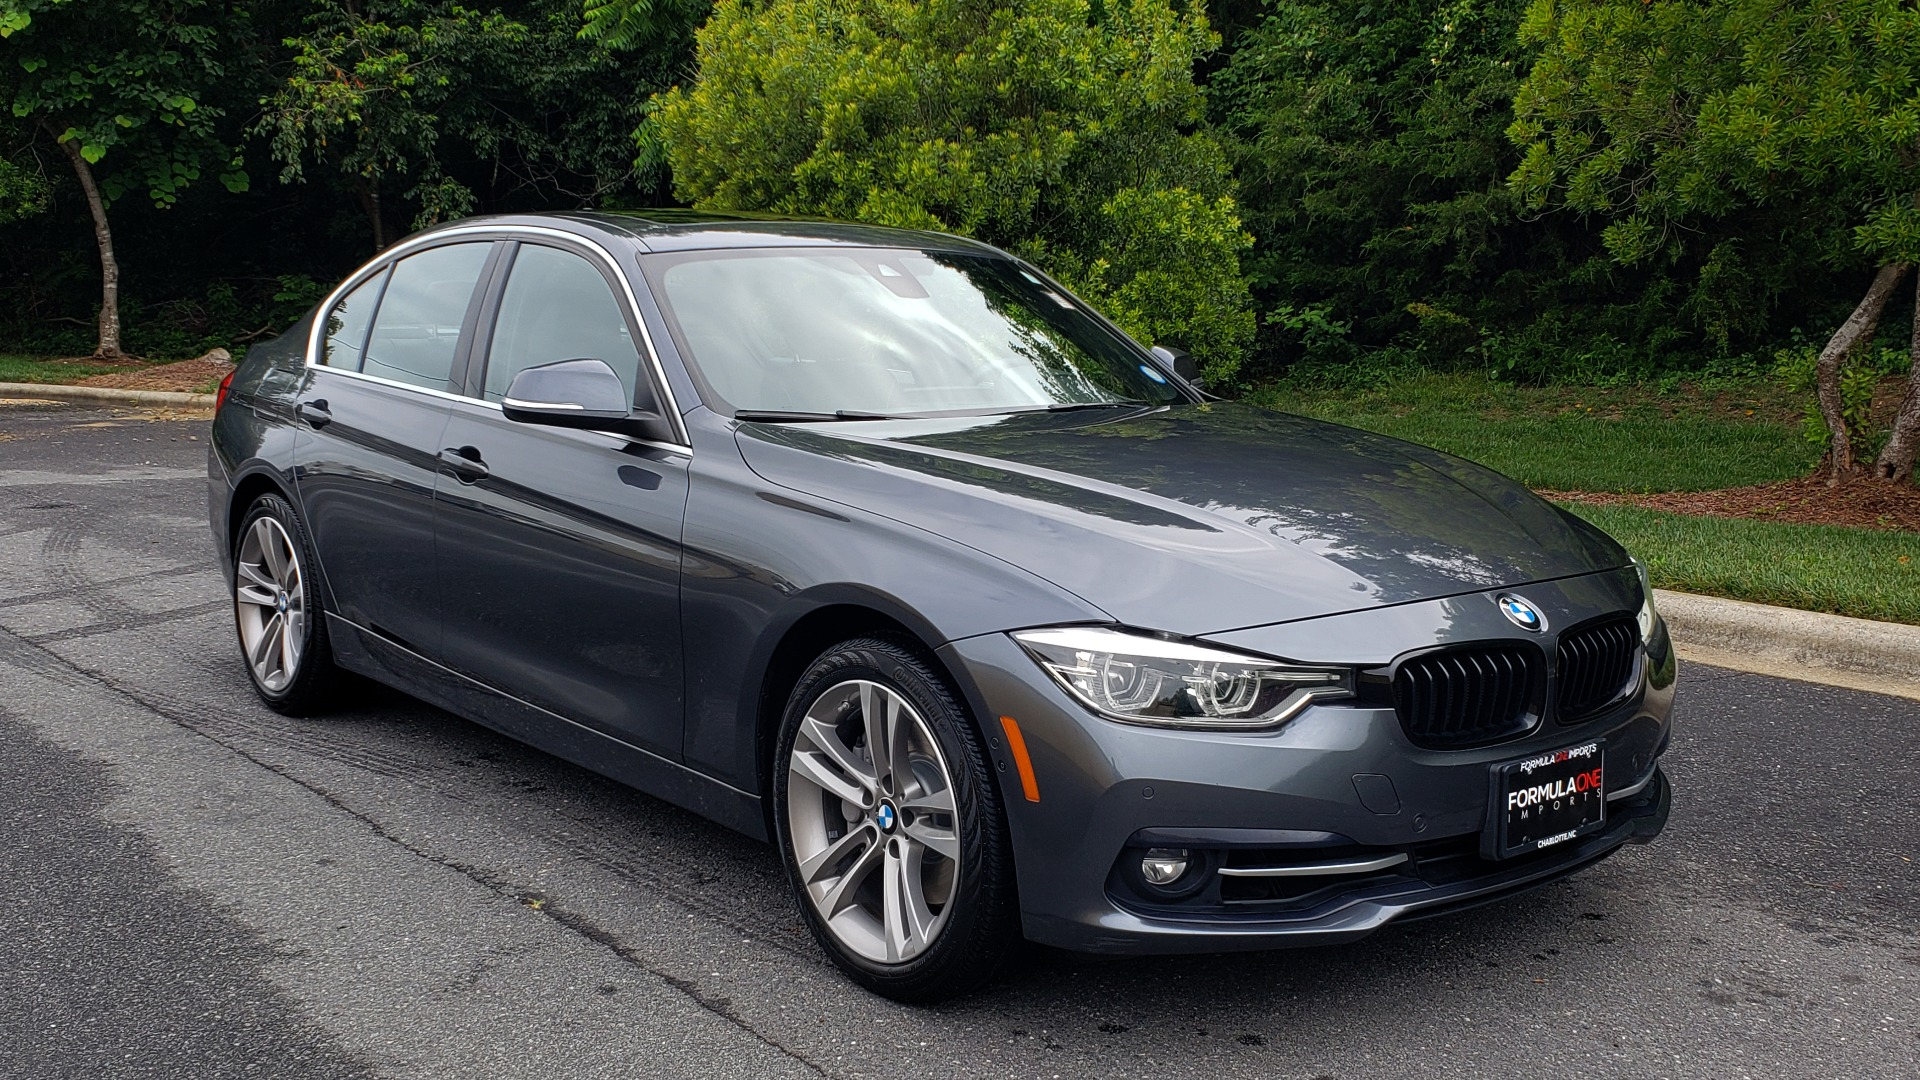 Used 2017 BMW 3 SERIES 340I XDRIVE SPORT / DRVR ASST PLUS / NAV / CLD WTHR / PARK ASST for sale Sold at Formula Imports in Charlotte NC 28227 4